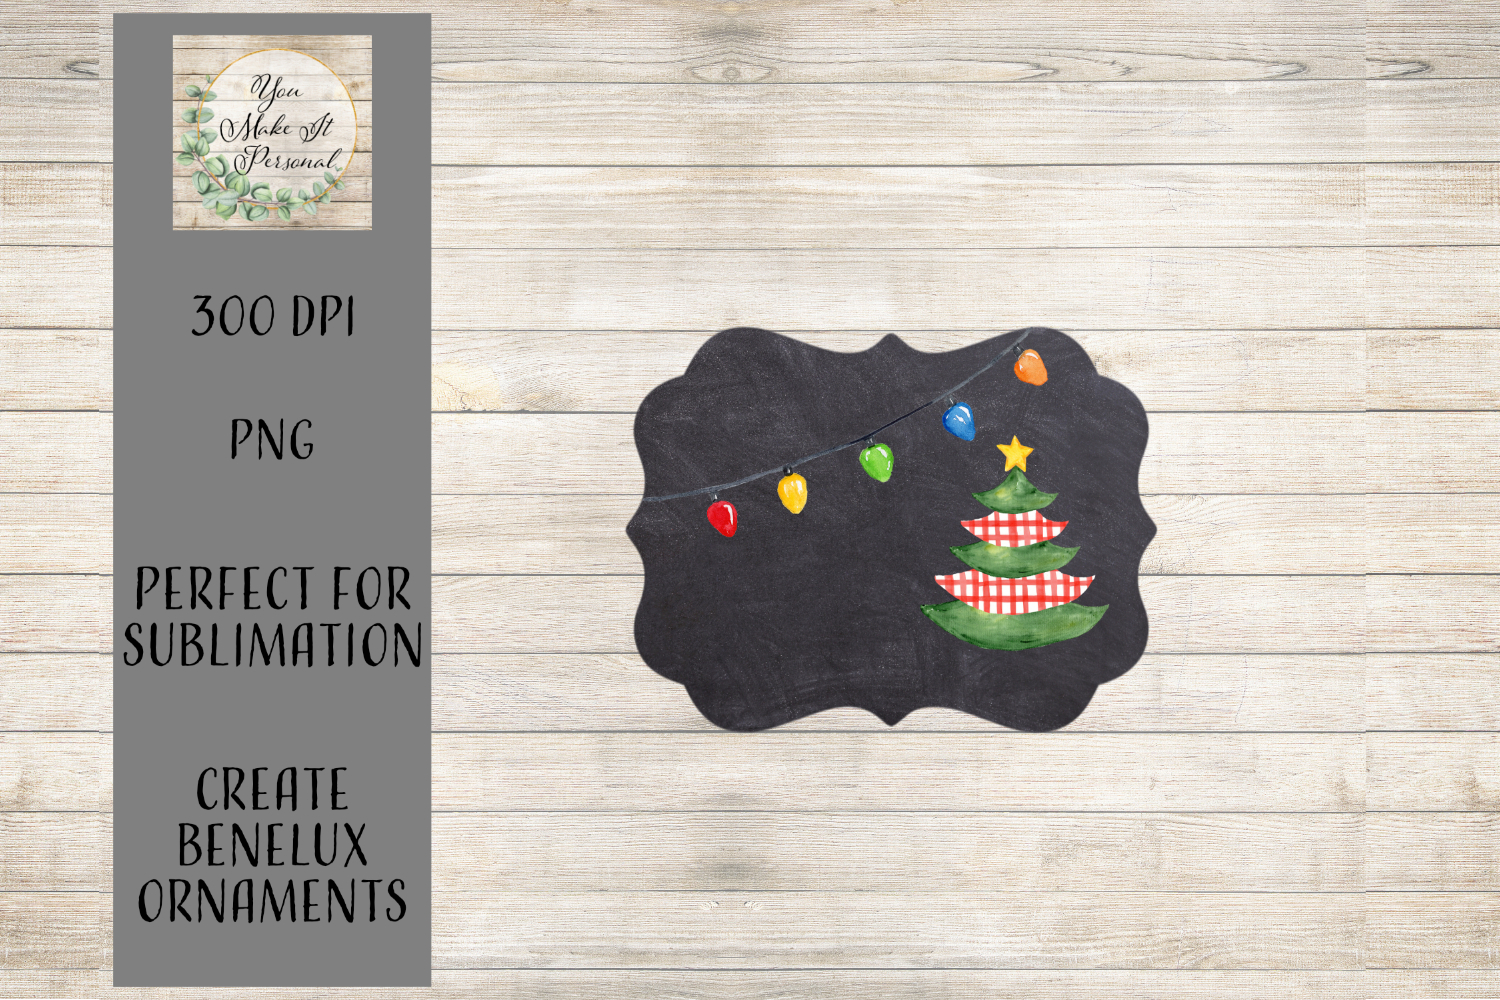 Sublimation Ornament Template - Chalkboard Background example image 1